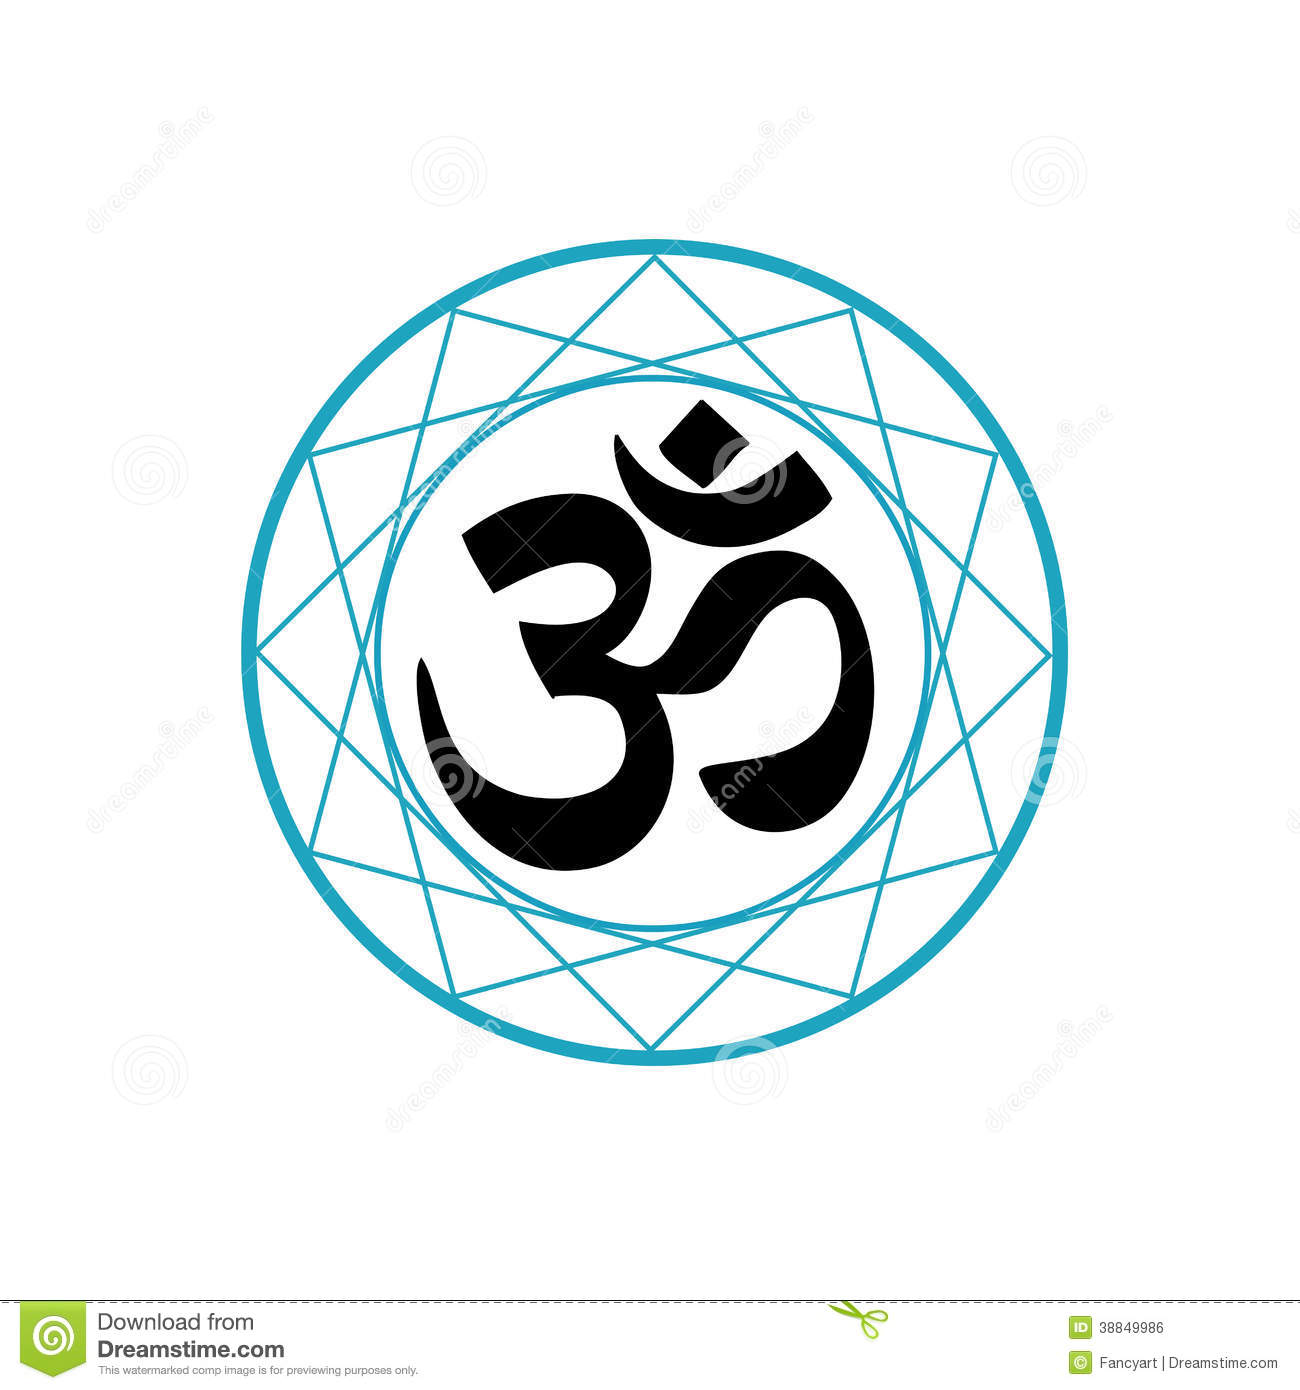 Religious symbol of hinduism stock vector illustration 38849986 religious symbol of hinduism biocorpaavc